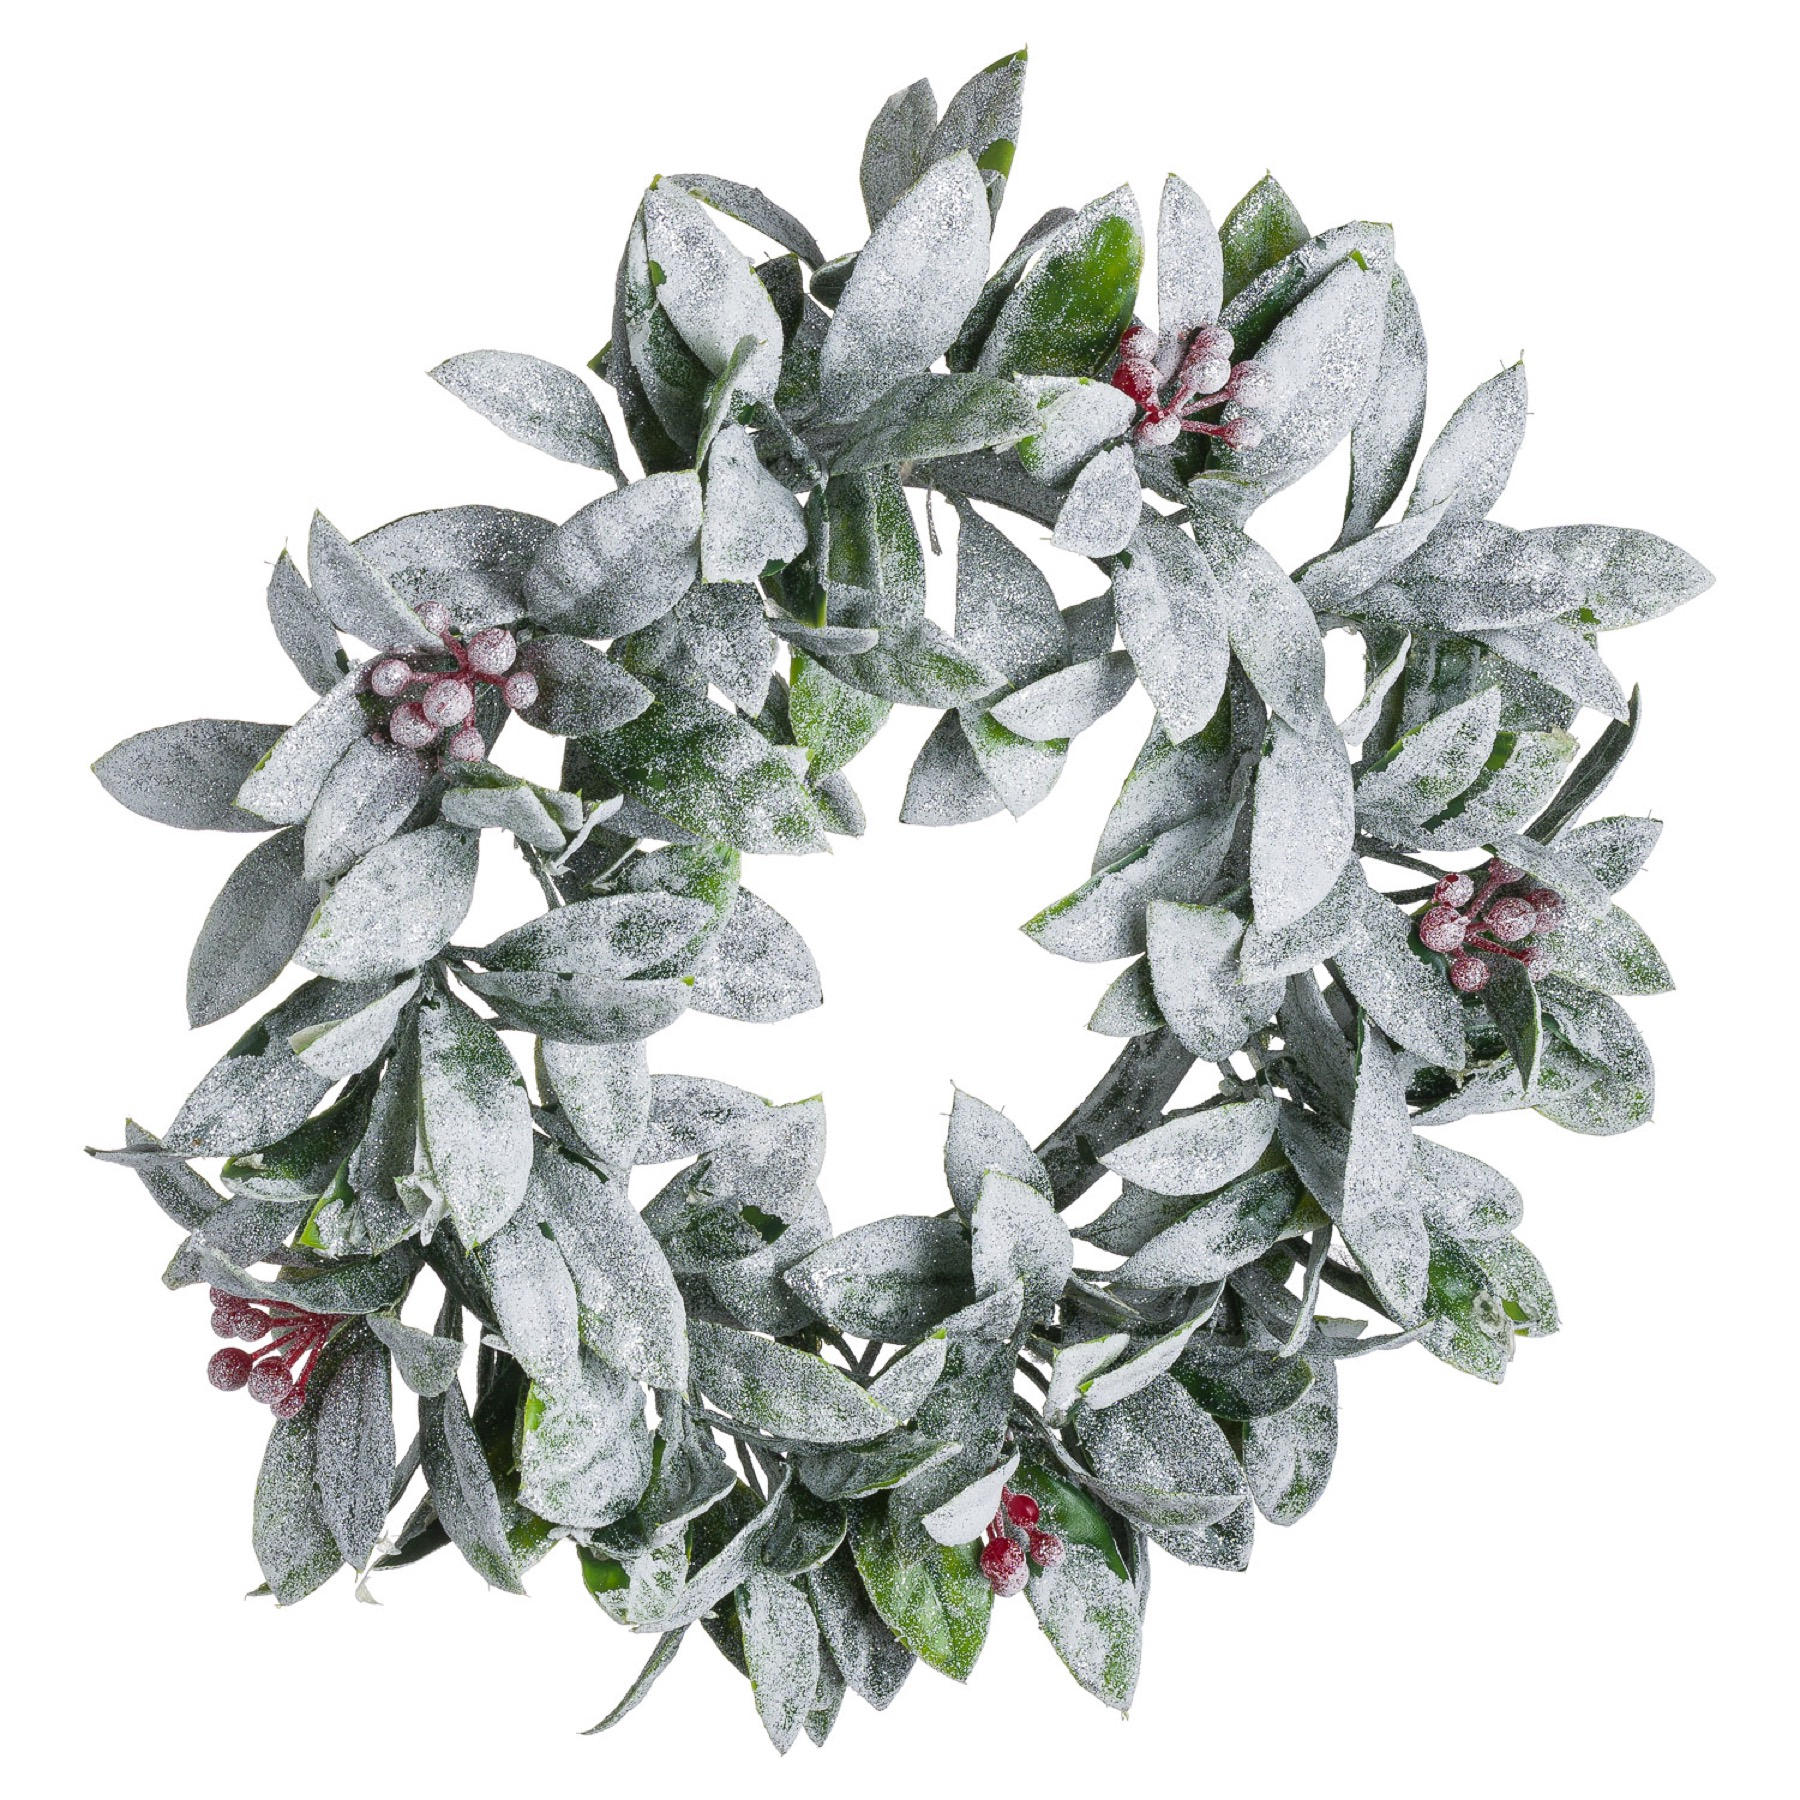 Large Frosted Candle Wreath - Image 1